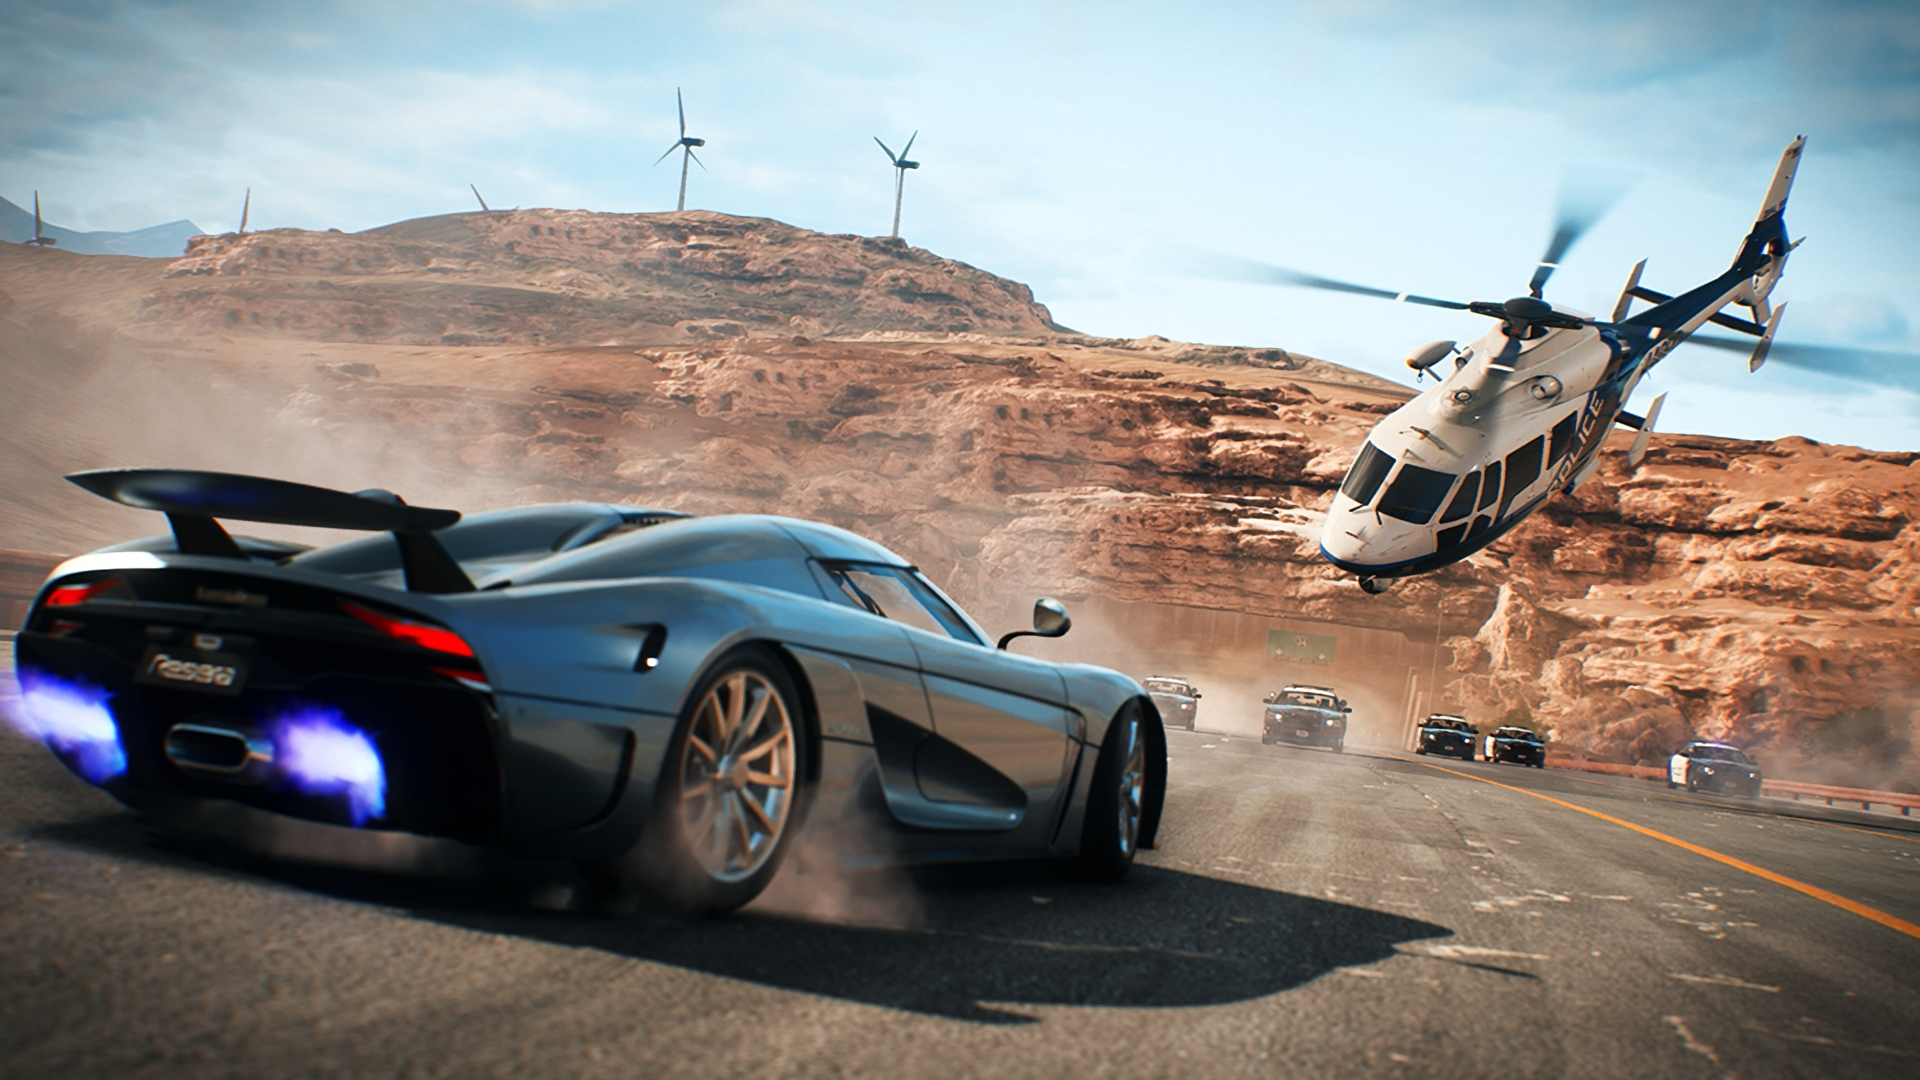 HD Need for Speed Payback Sports Car Police Chase 166 1920x1080